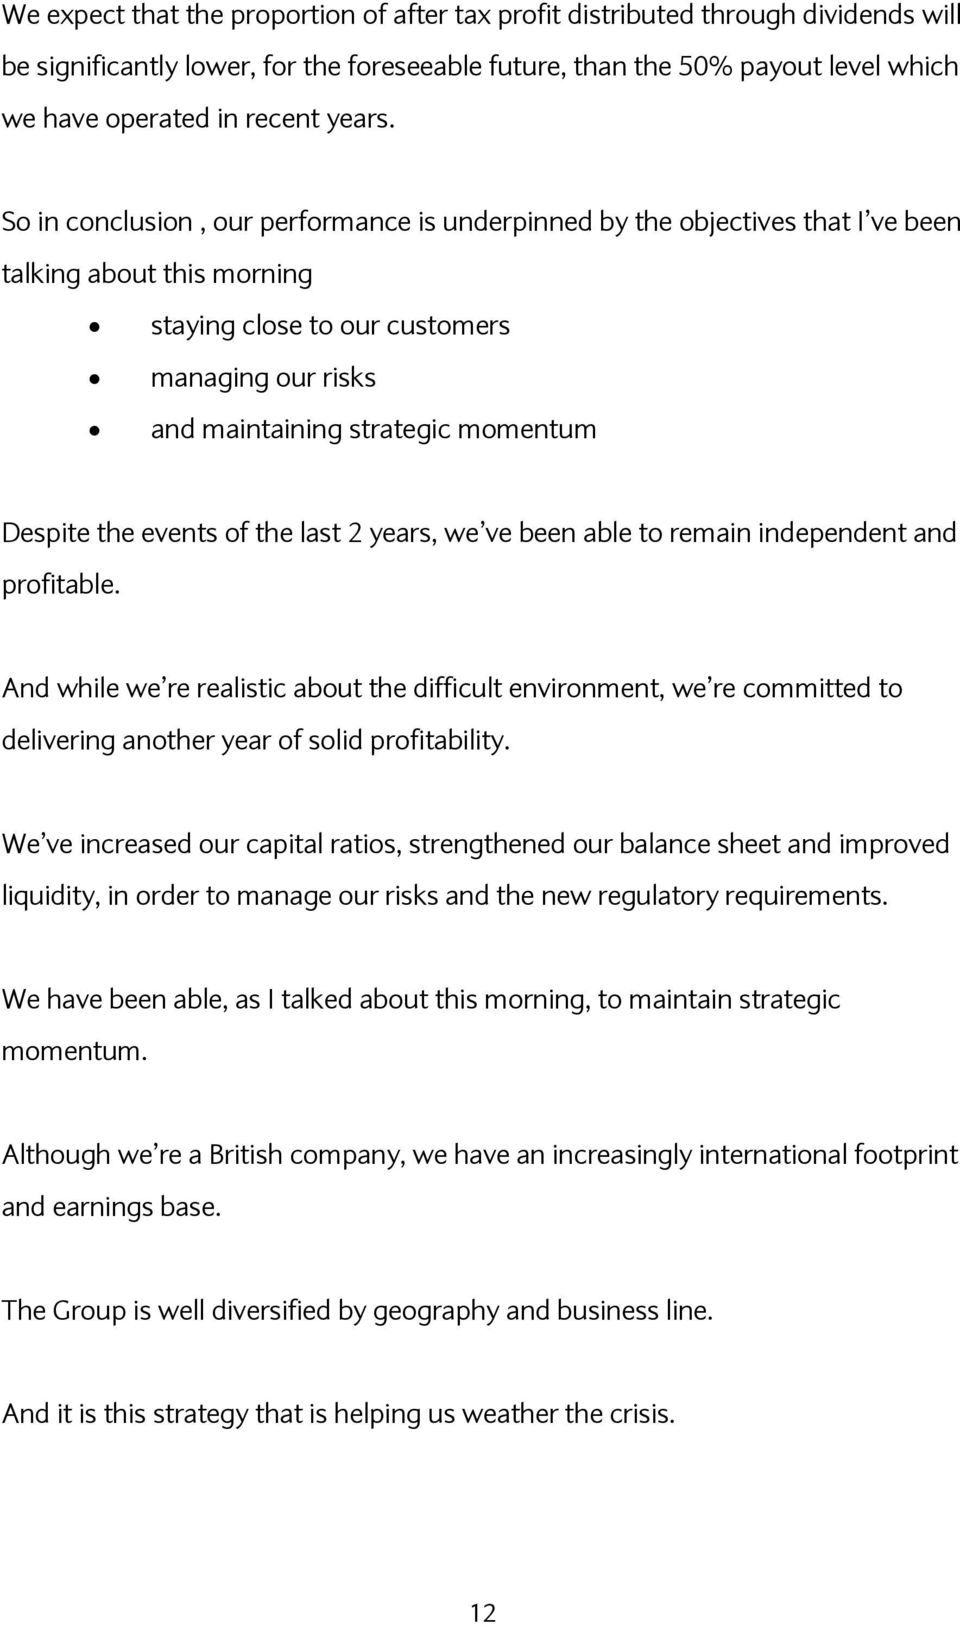 So in conclusion, our performance is underpinned by the objectives that I ve been talking about this morning staying close to our customers managing our risks and maintaining strategic momentum